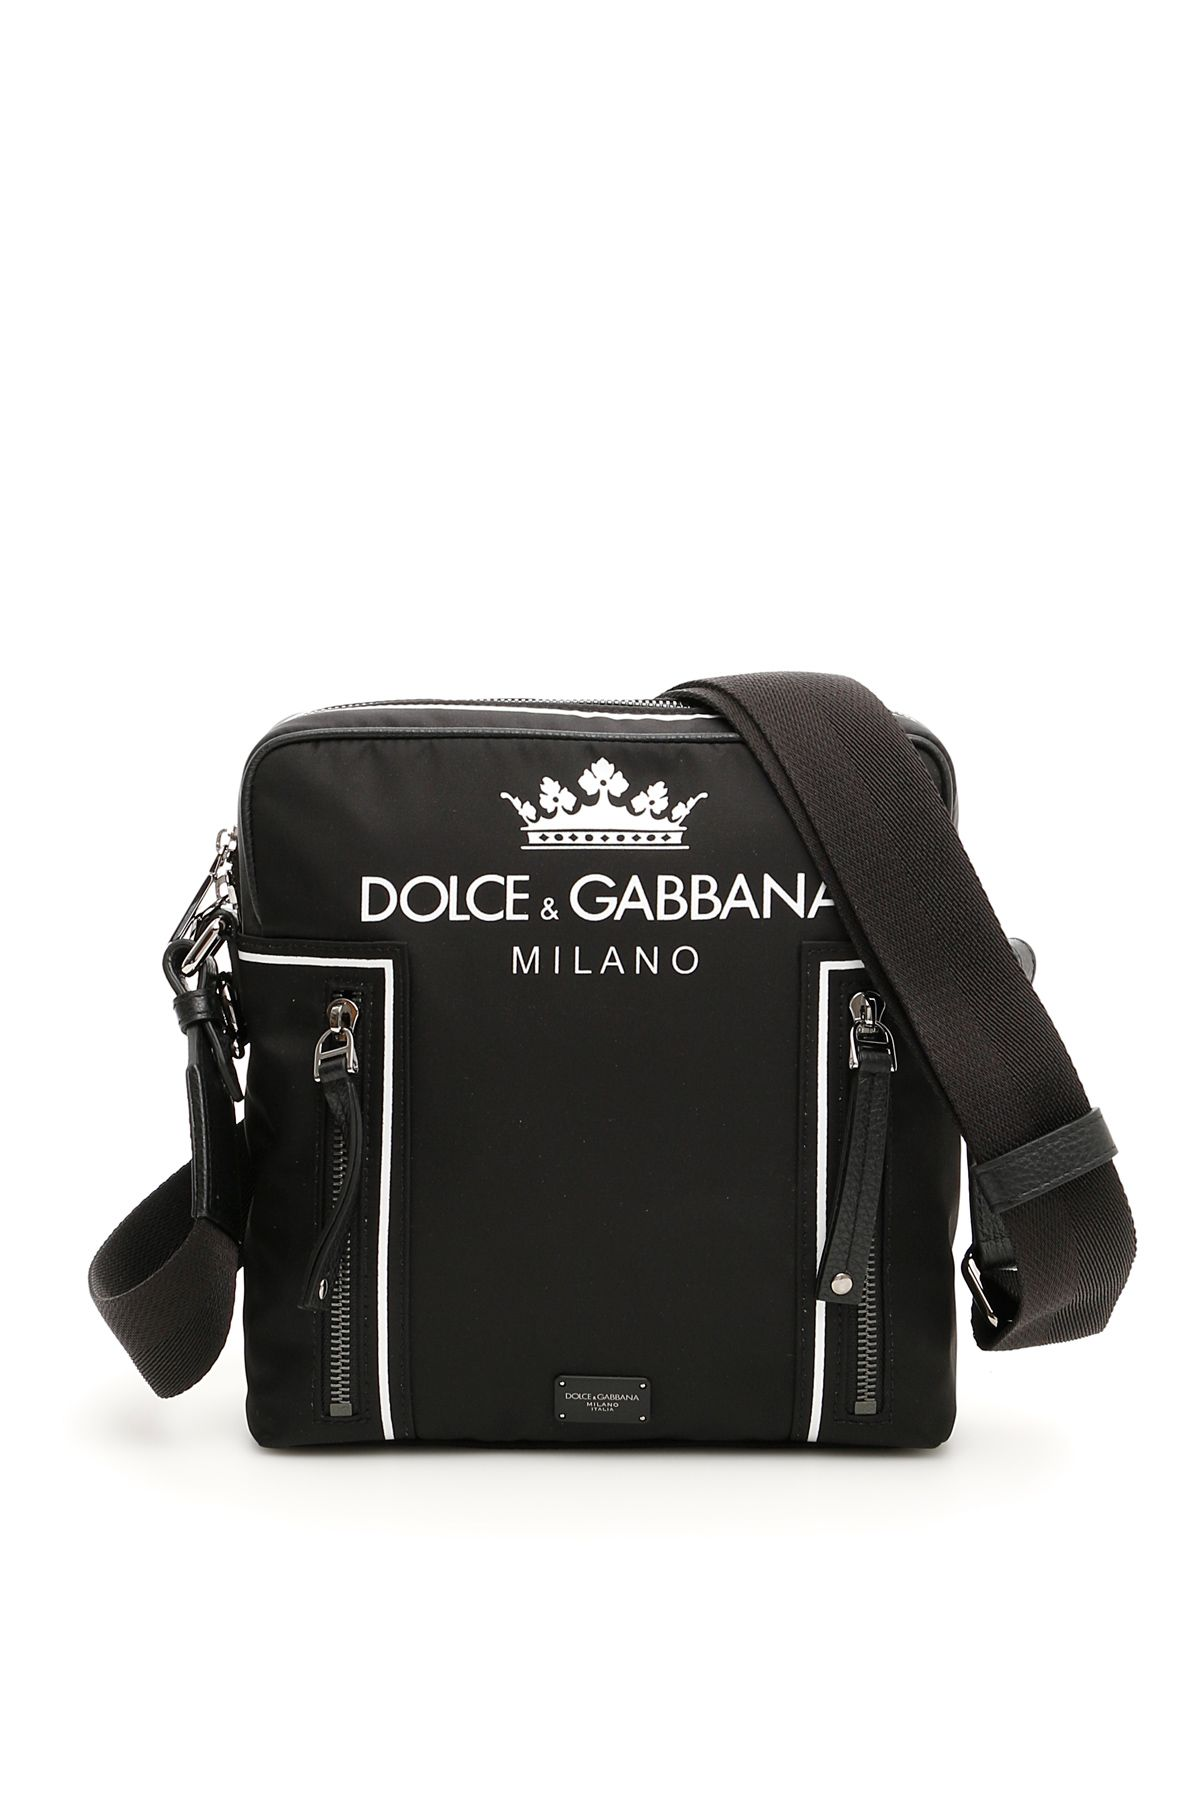 a59e9aa450ae Dolce   Gabbana Nylon Messenger Bag With Crown And Logo - DG MILANO FONDO  NERO